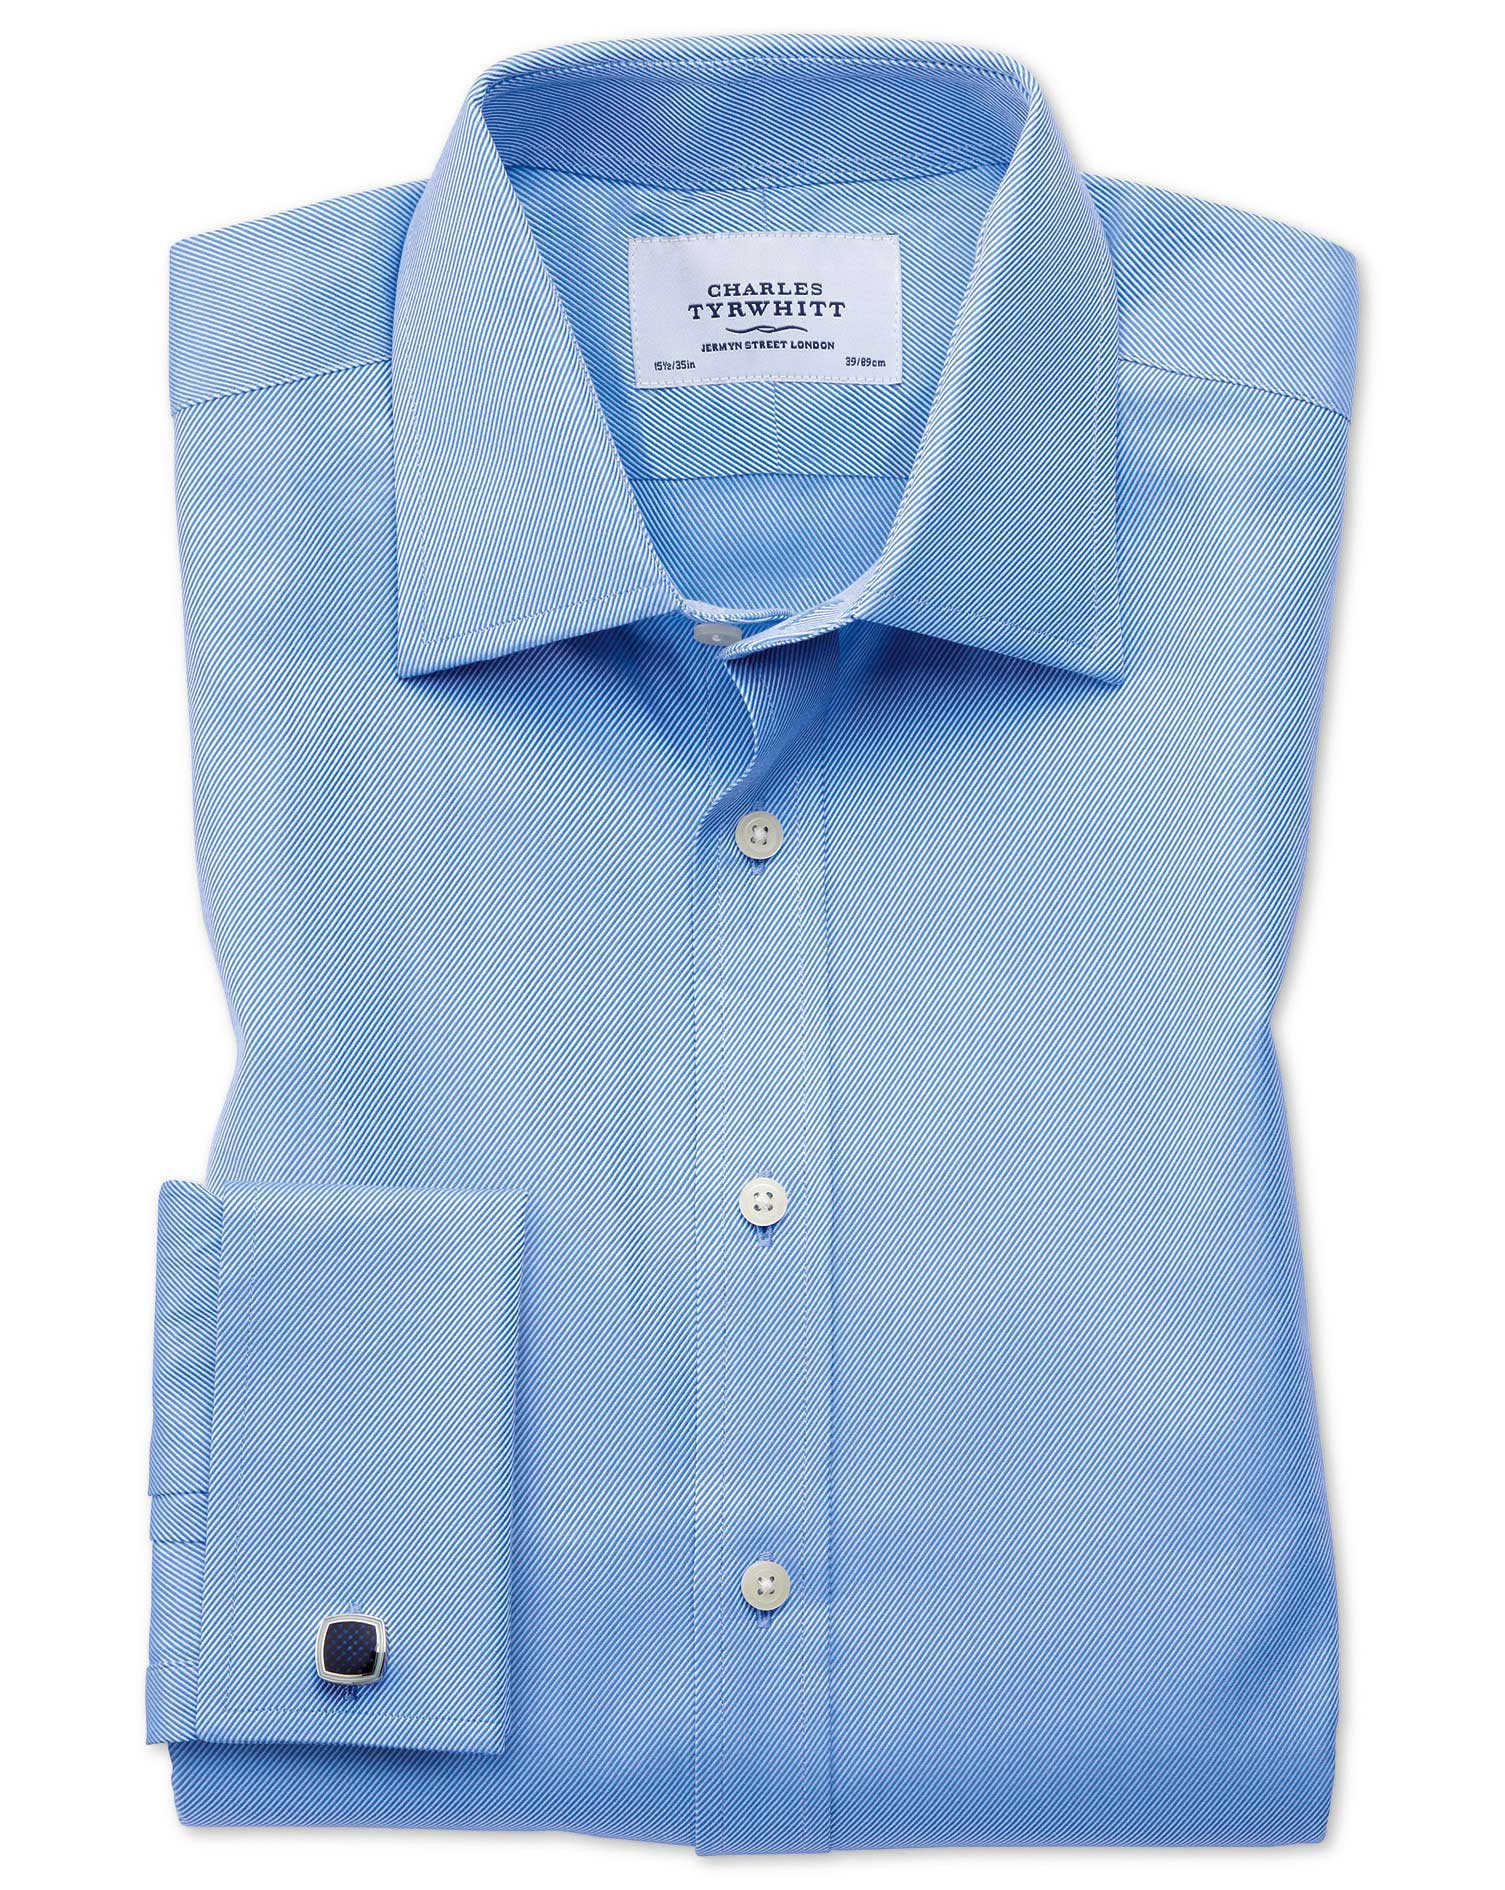 Classic Fit Egyptian Cotton Cavalry Twill Blue Formal Shirt Double Cuff Size 15.5/34 by Charles Tyrw